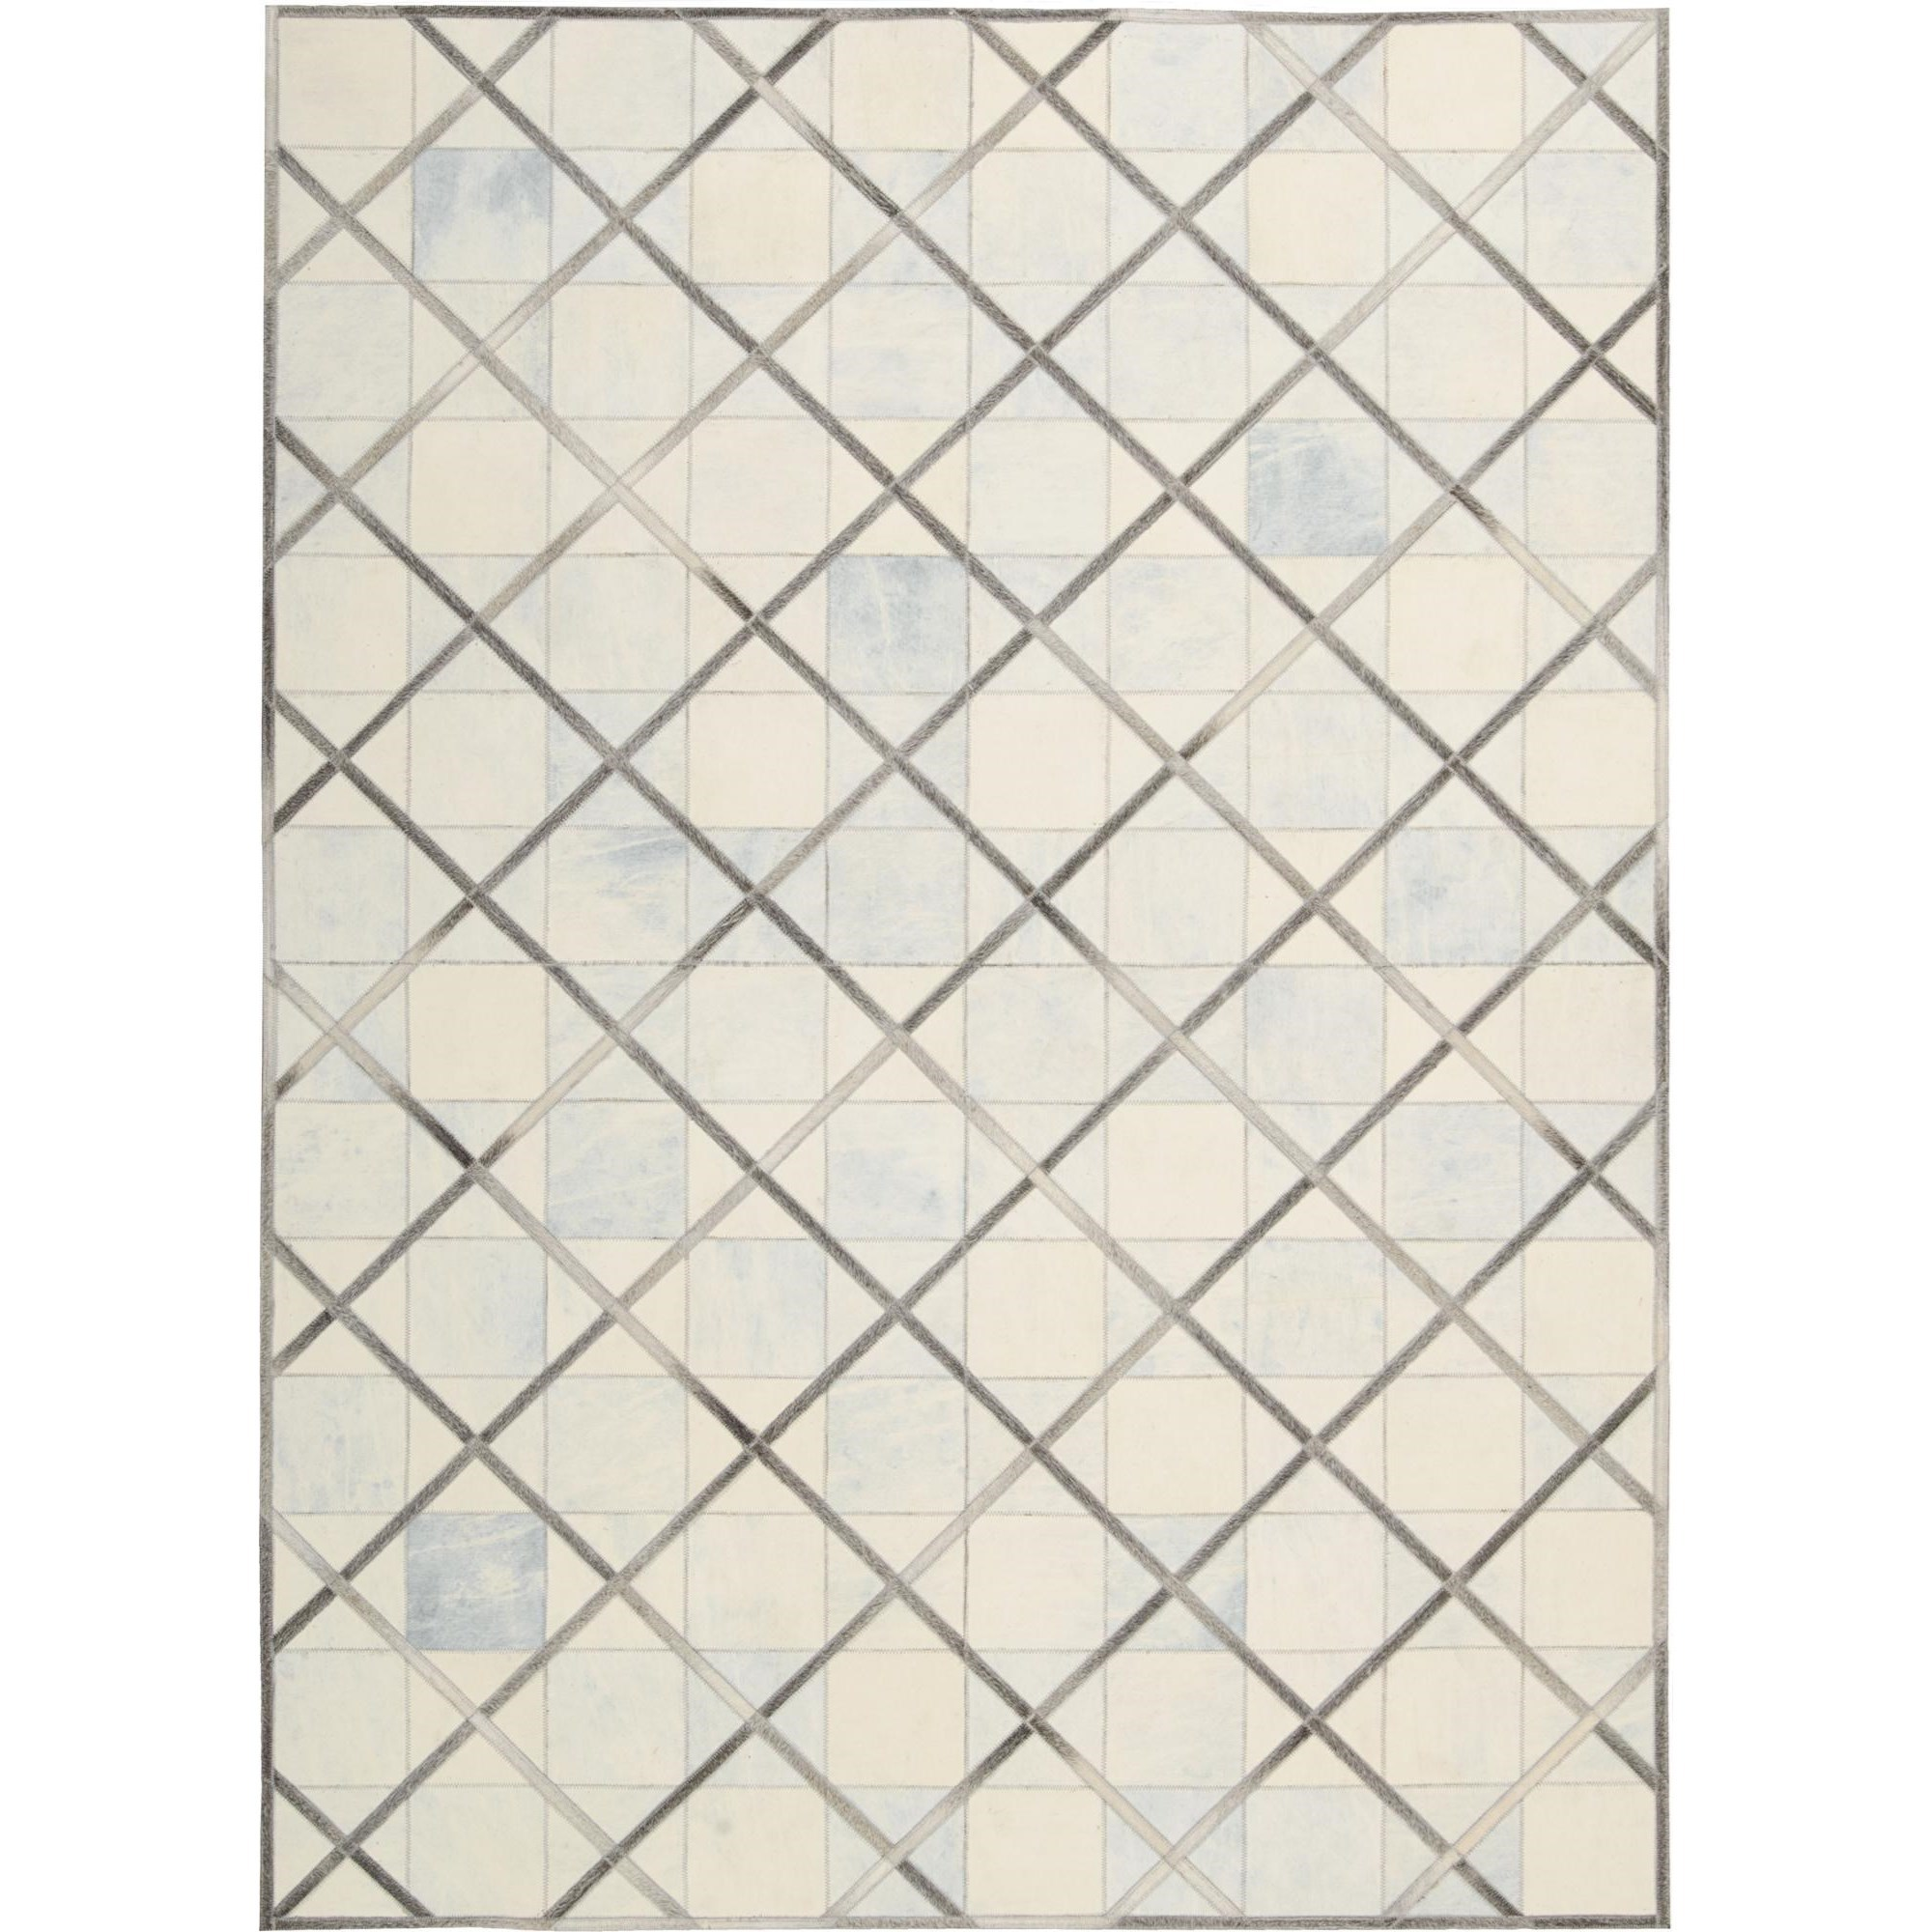 Nourison Barcaly Butera Lifestyle - Cooper 8' x 11' Cloud Area Rug - Item Number: 32191